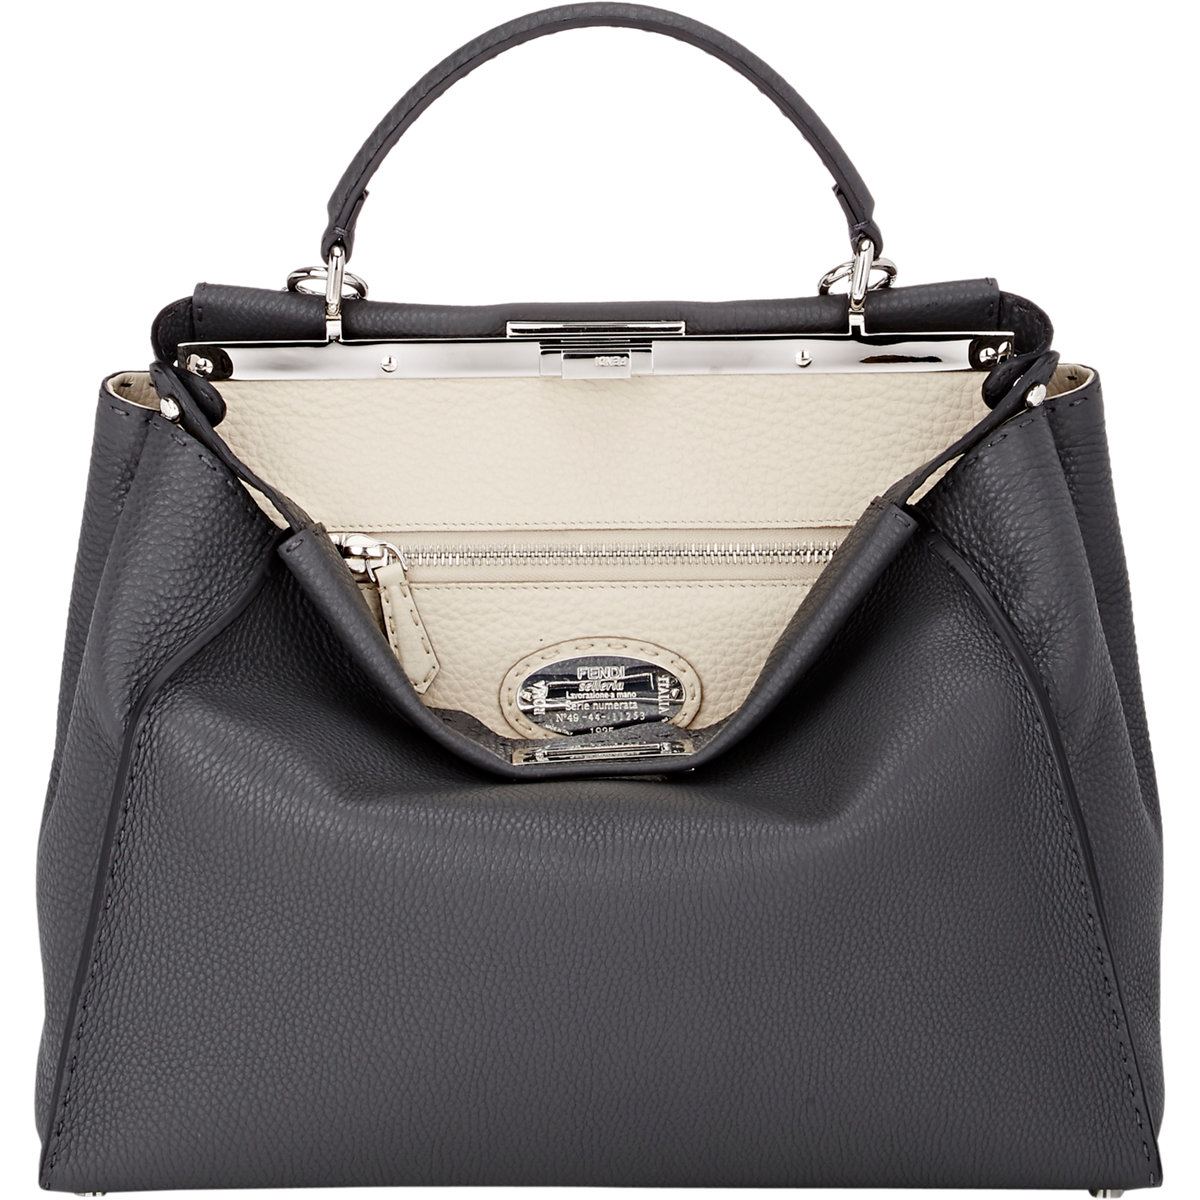 7f802b101f Lyst - Fendi Selleria Peekaboo Large Satchel in Black